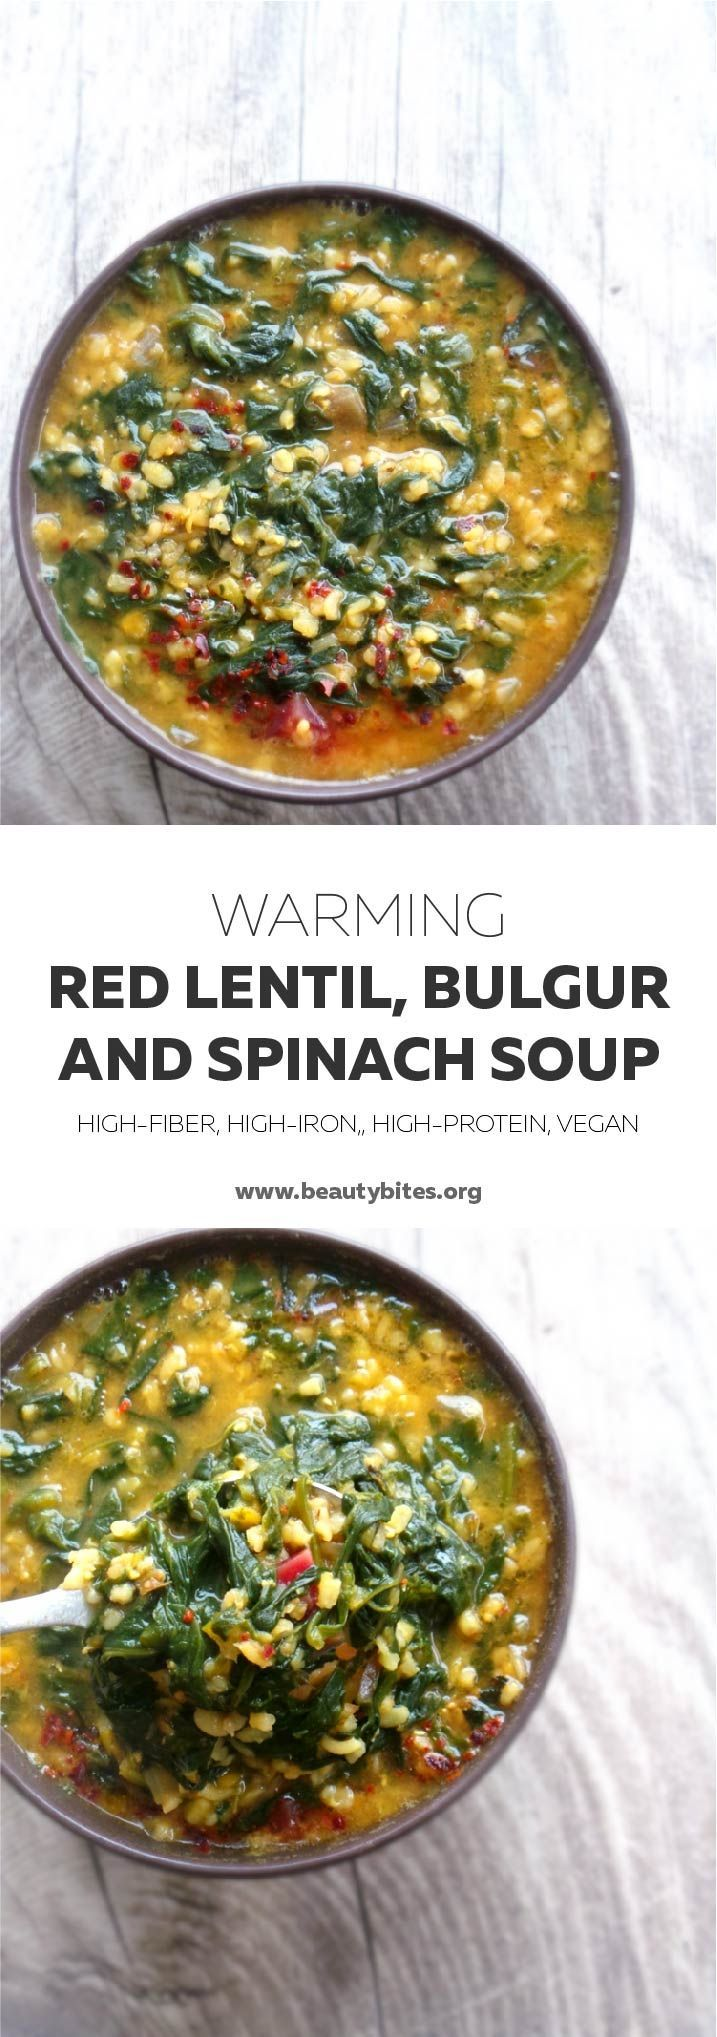 A delicious warming healthy soup recipe with spinach, lentils and bulgur. Vegan, high-fiber, high-iron and high-protein.